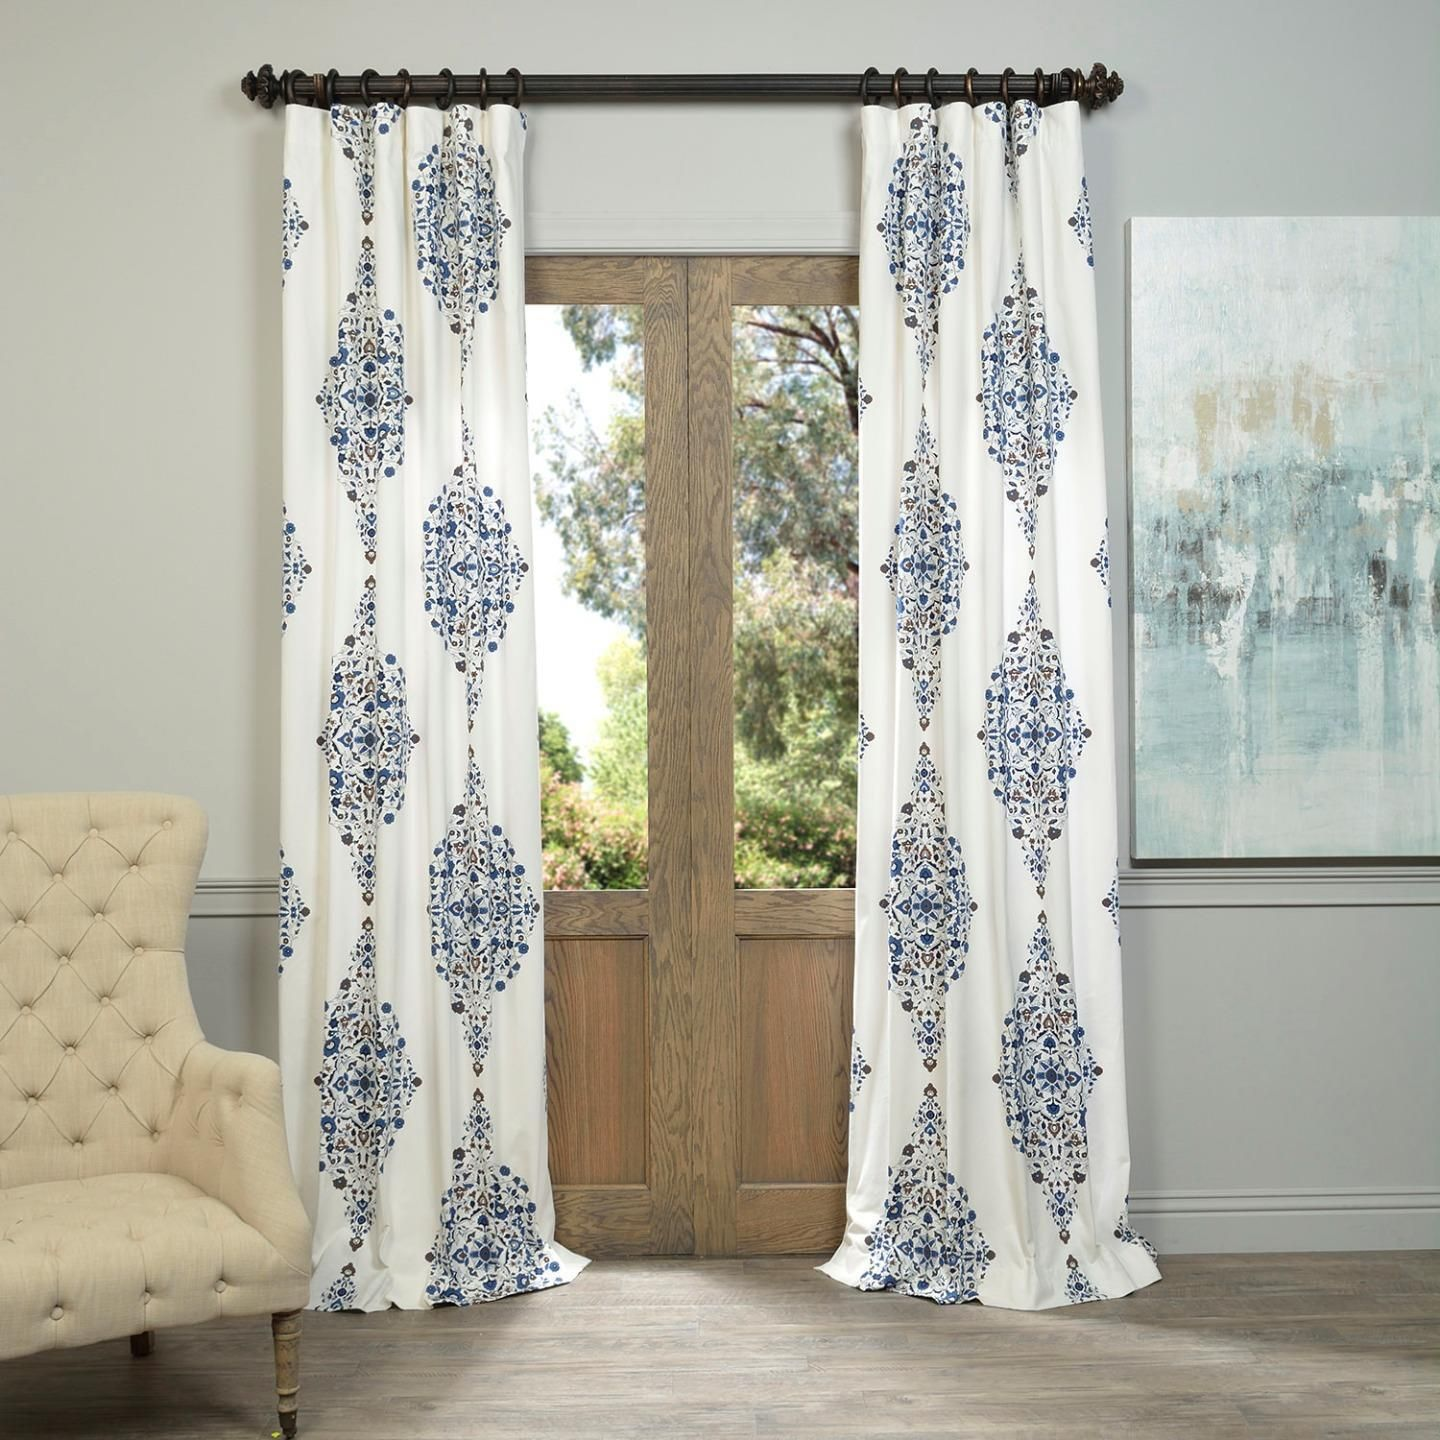 Complete your decor with these elegant Kerala curtain panels from